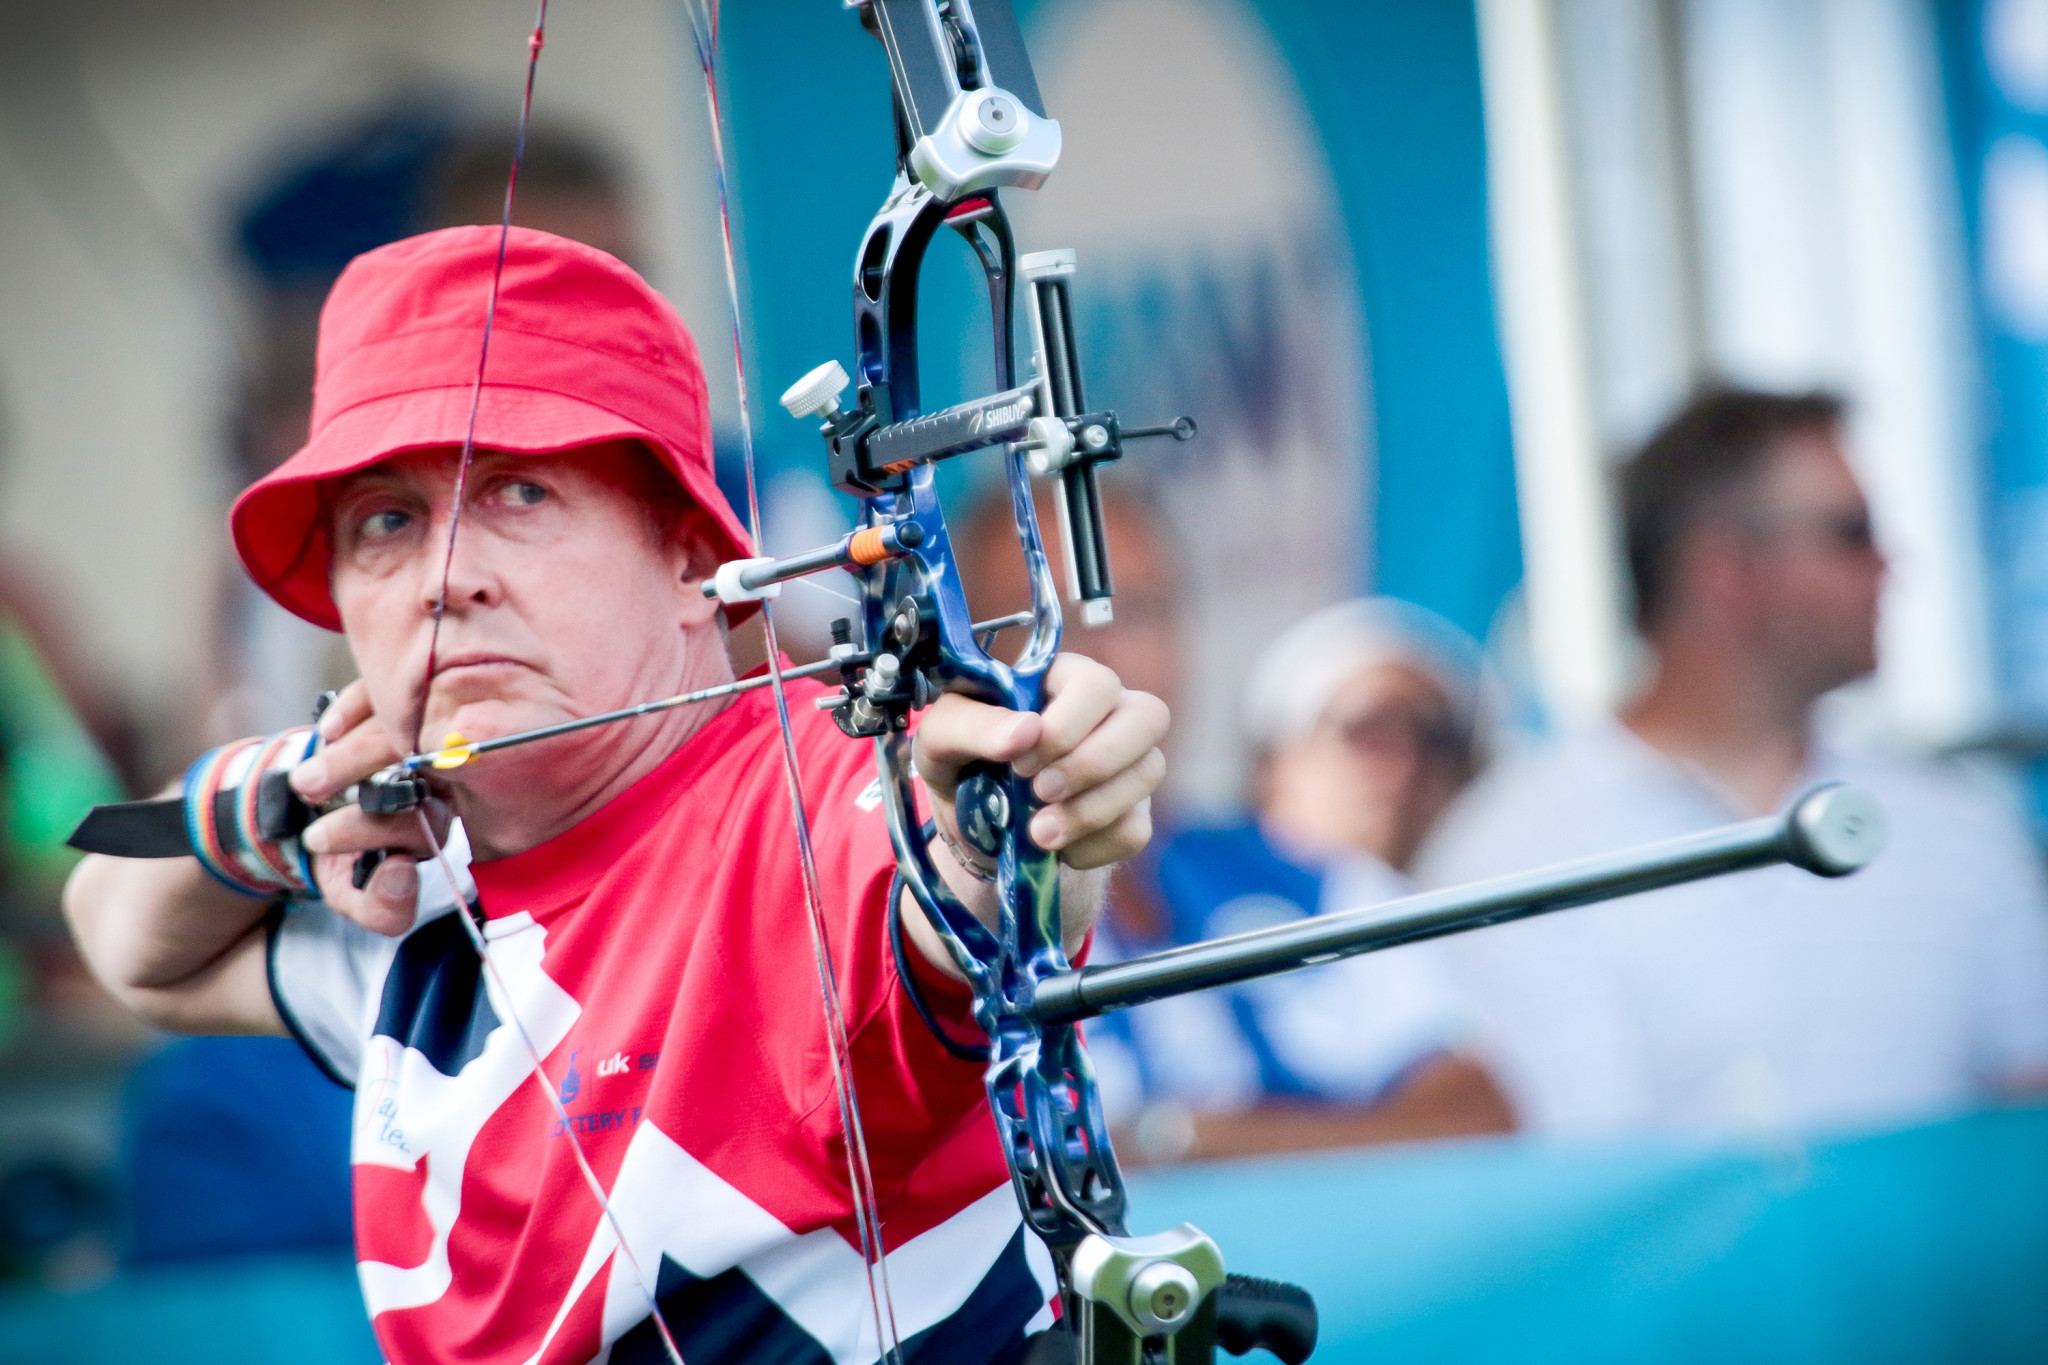 Five-time Paralympic archer Cavanagh retires due to ongoing injury